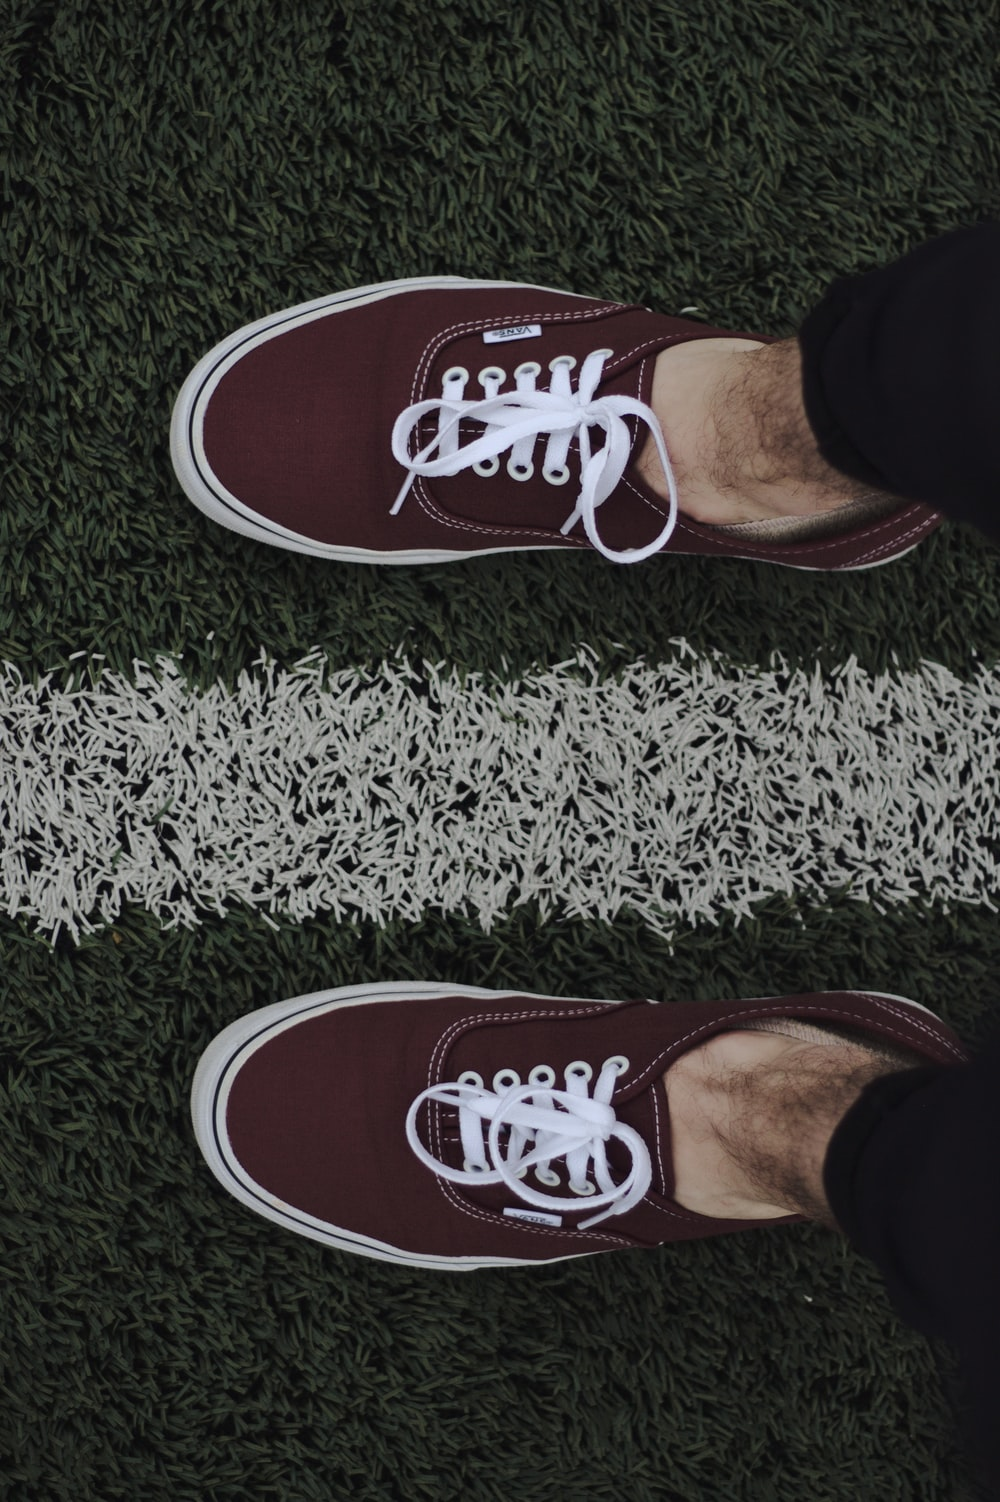 person wearing red and white vans low top sneakers